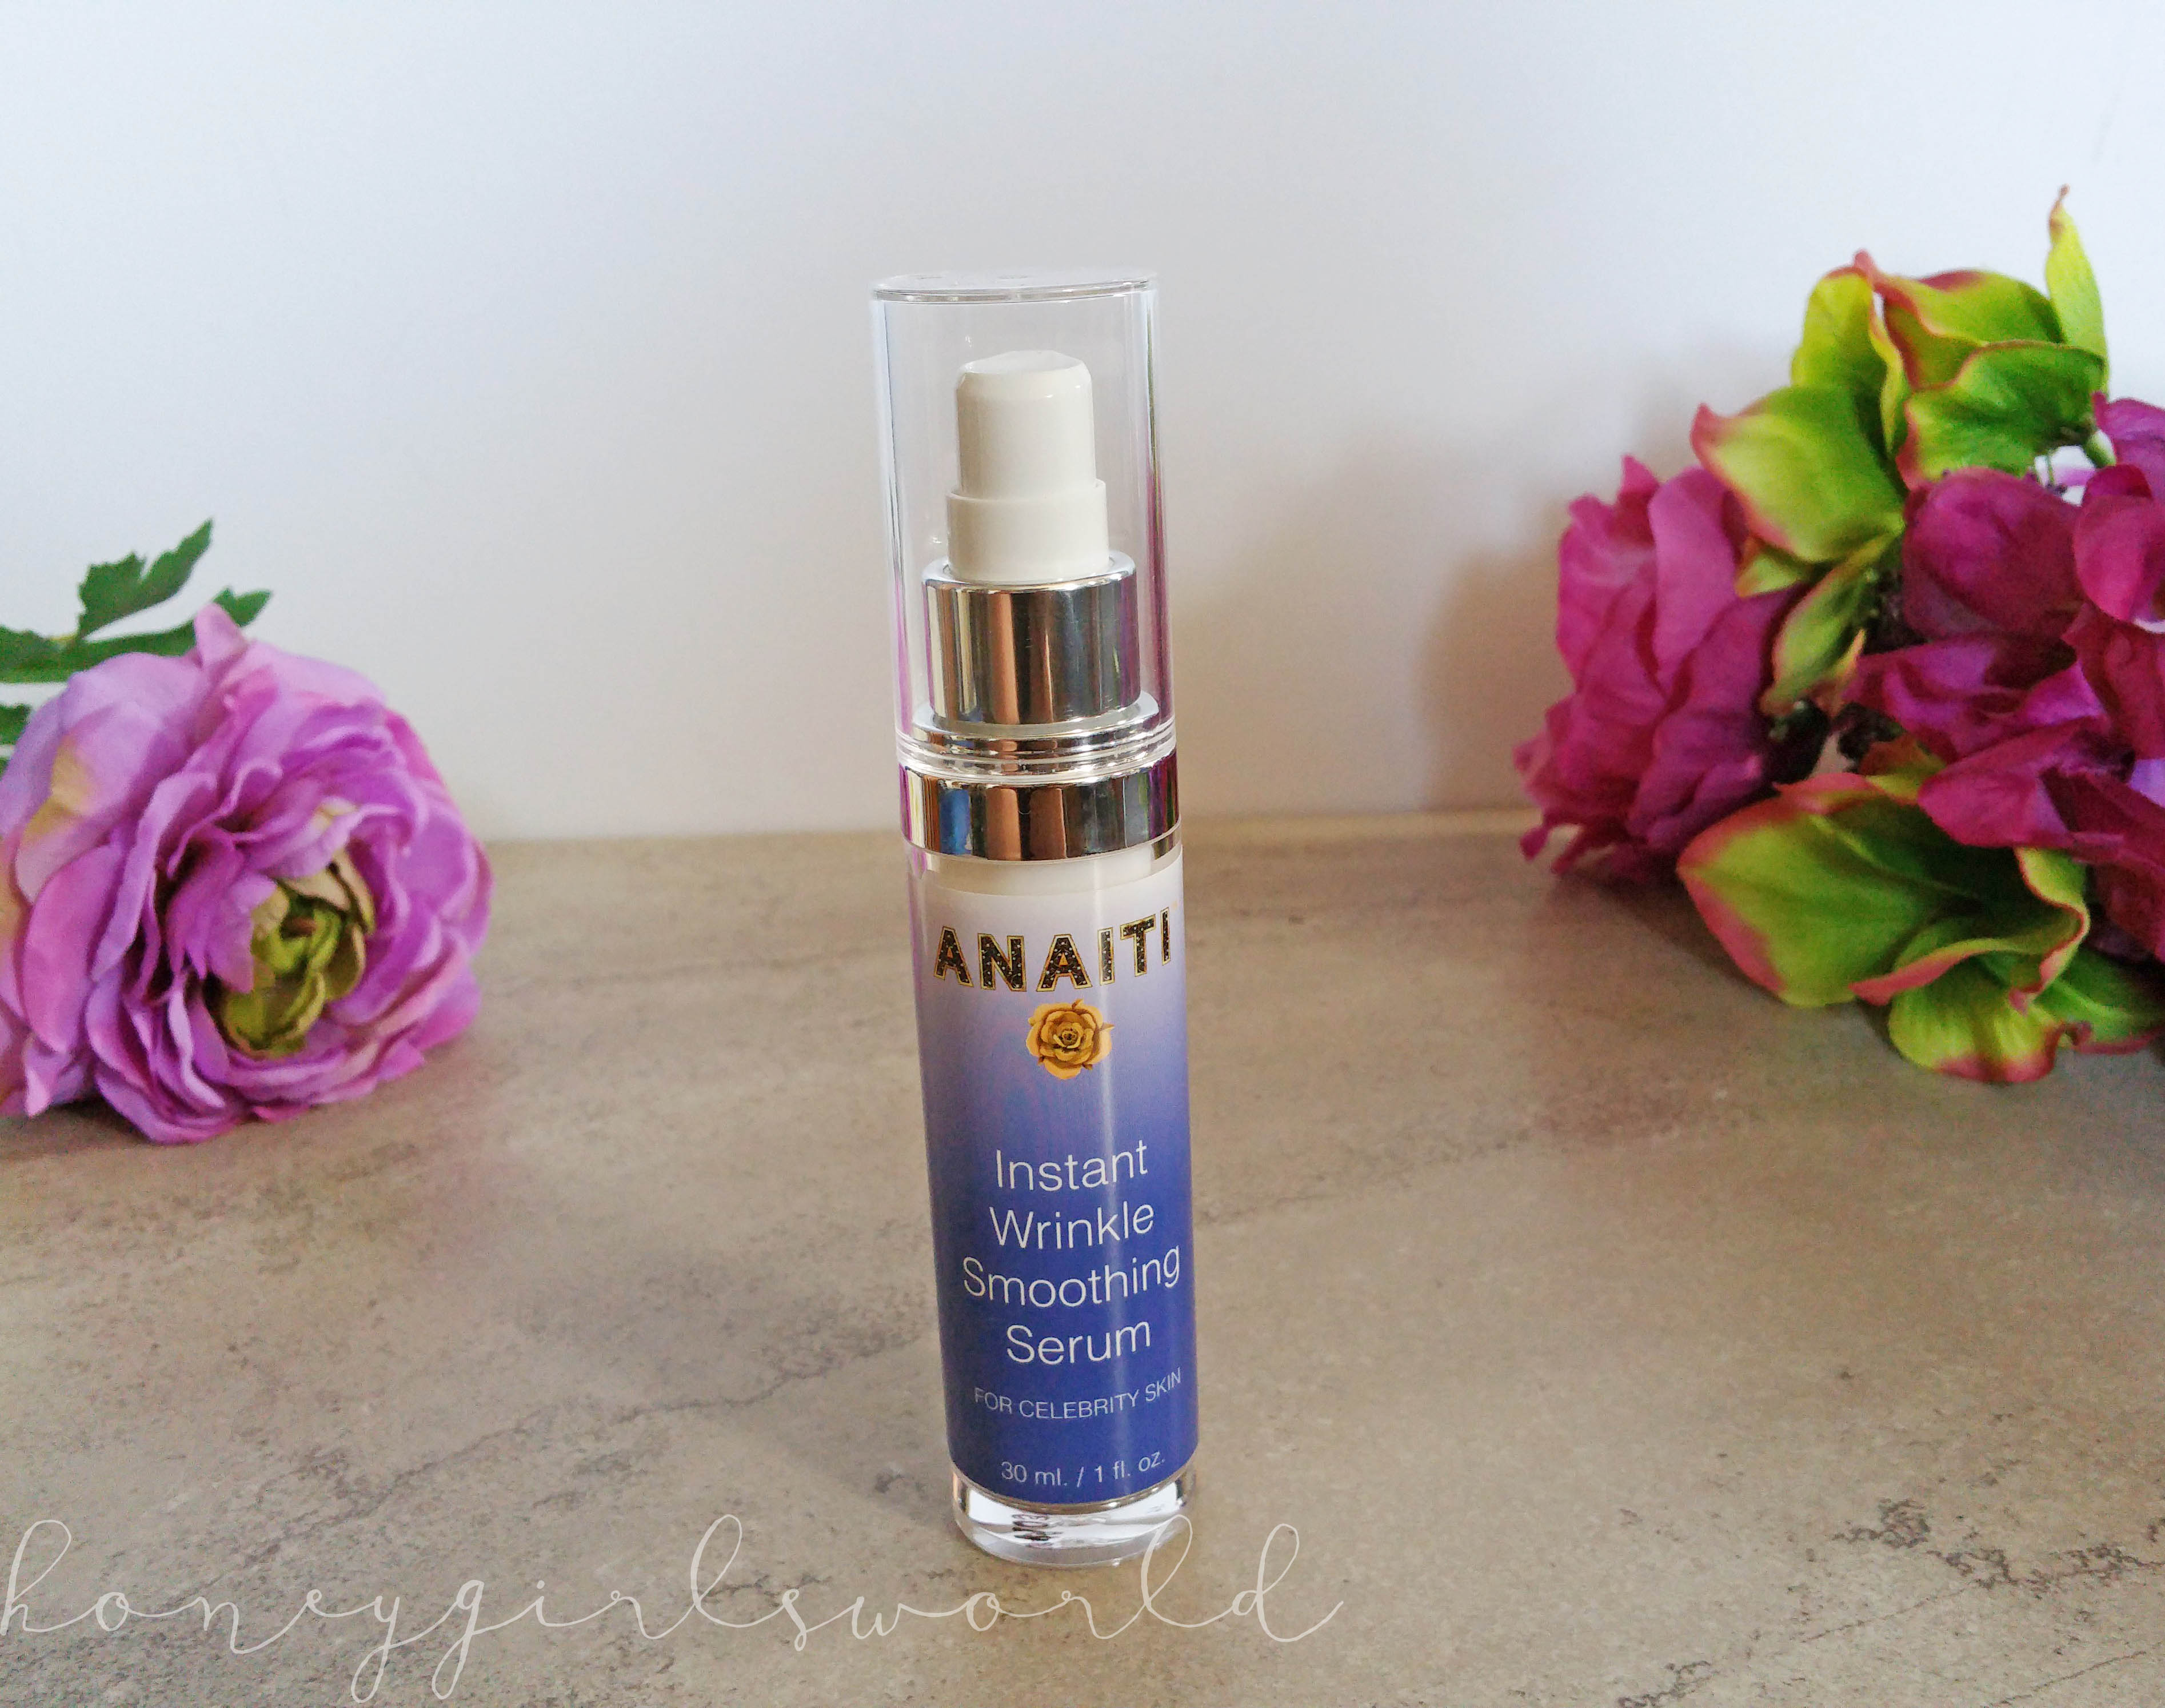 REVIEW: Anaiti Instant Wrinkle Smoothing Serum